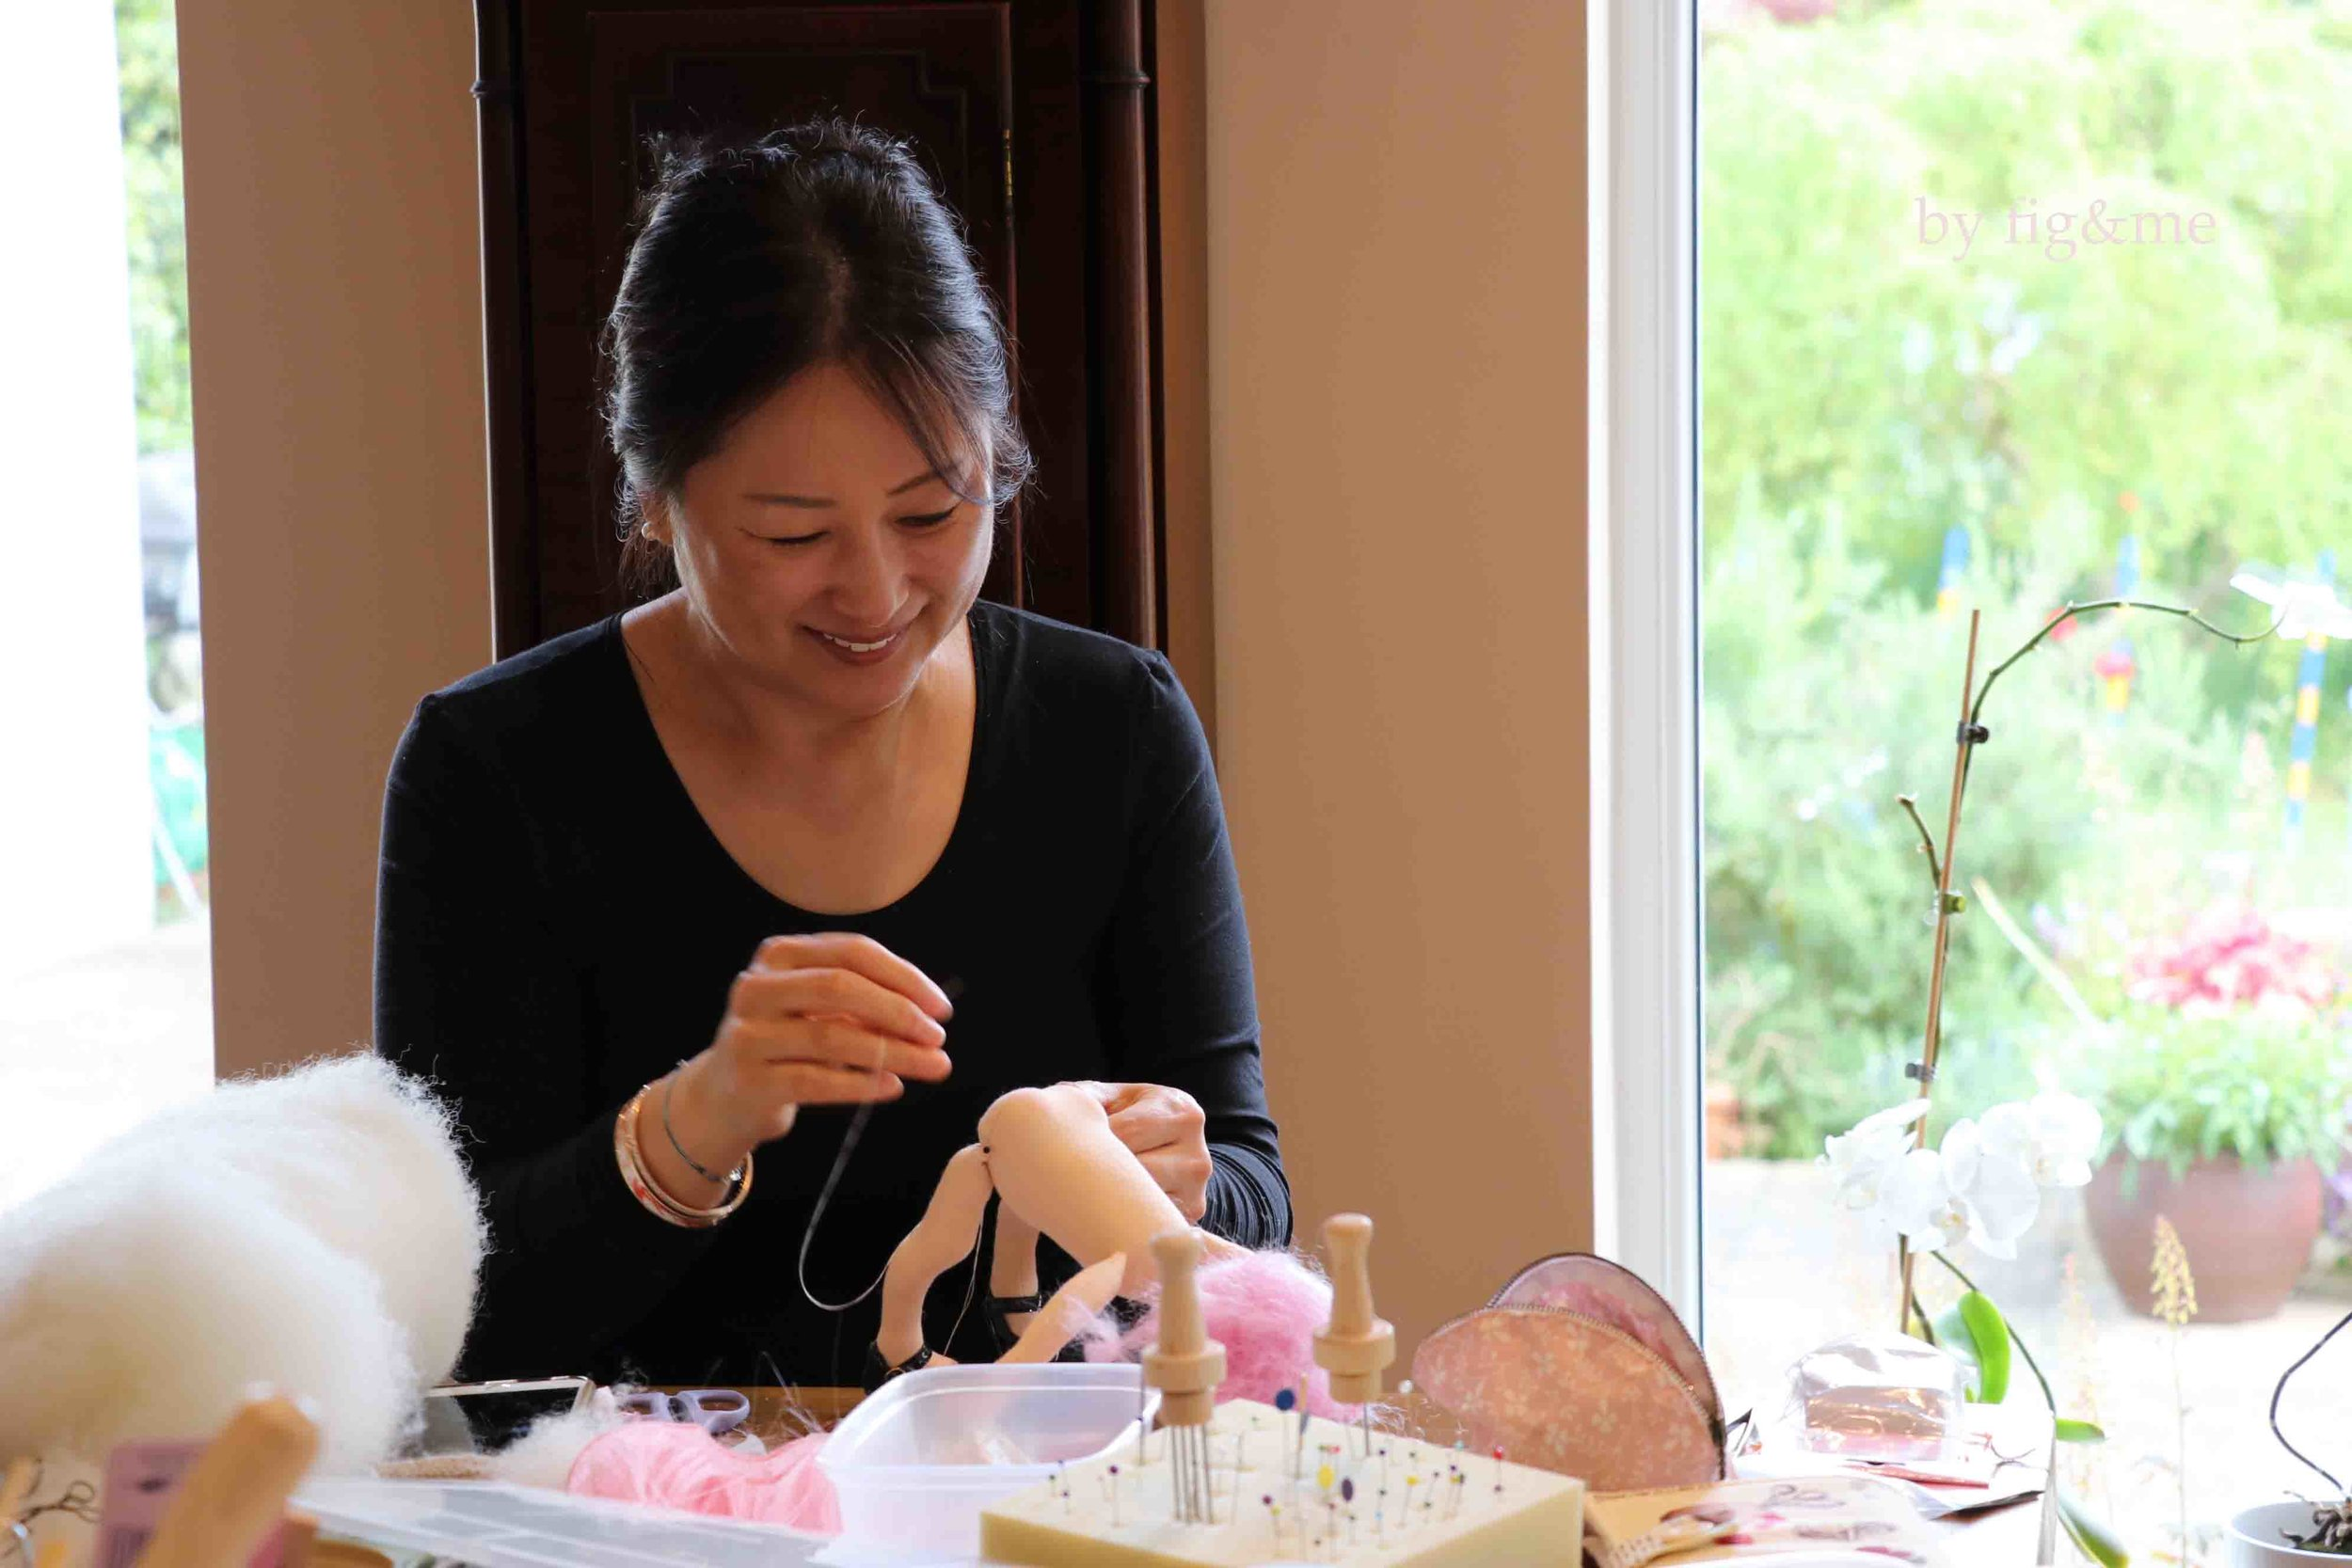 Eunice, deep in concentration working on her little doll. Fig and me doll workshop.